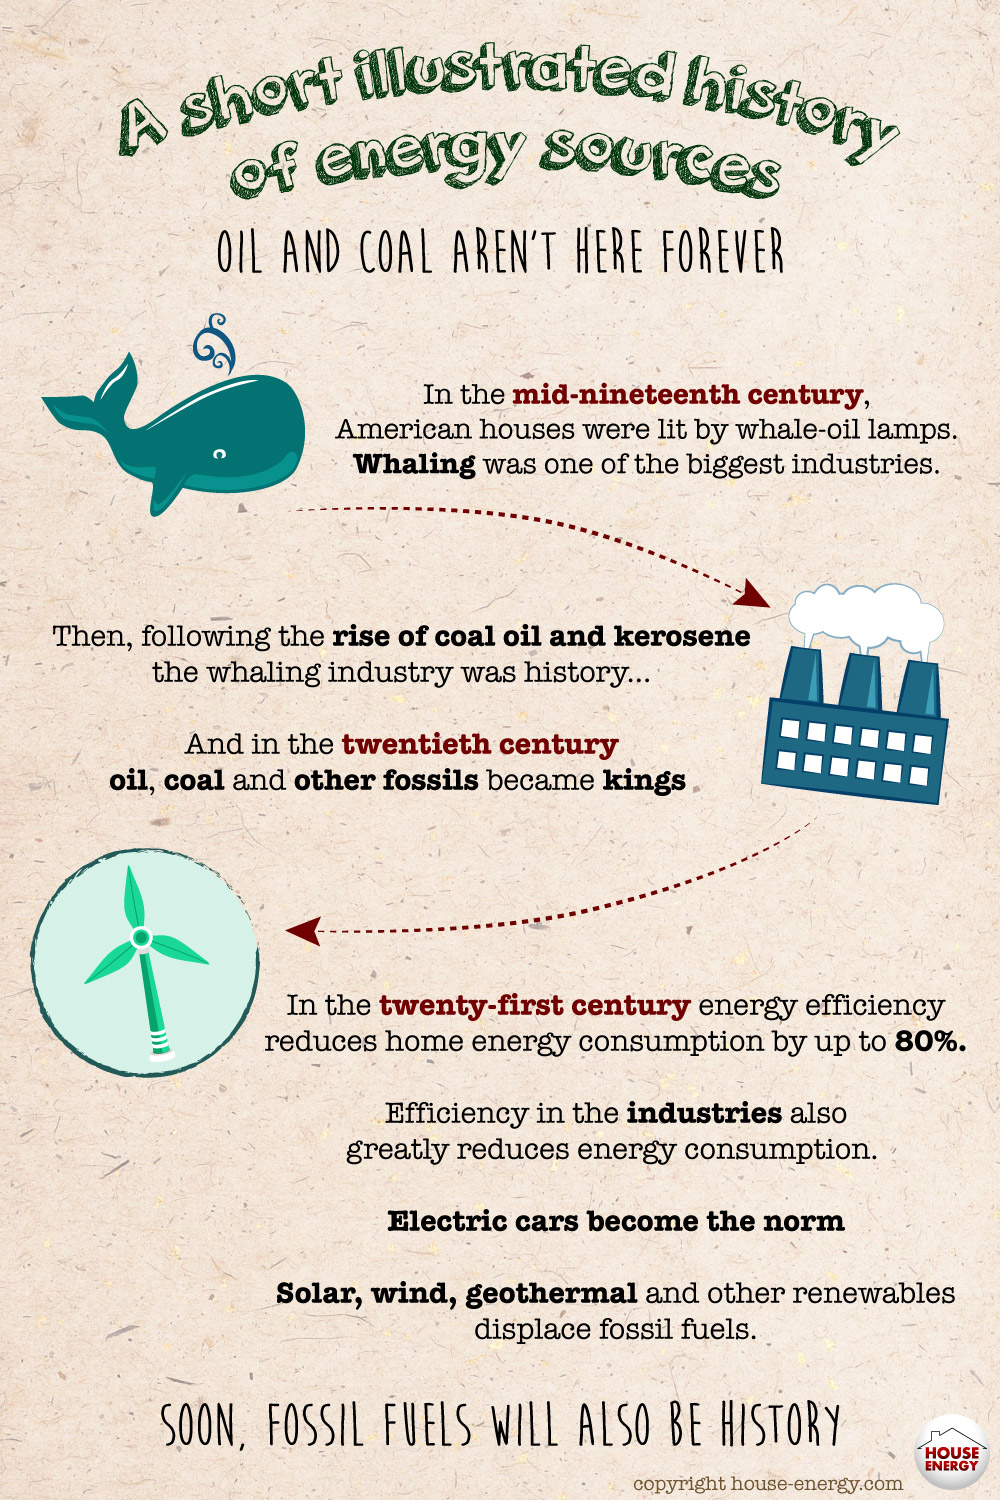 A short illustrated history of energy sources